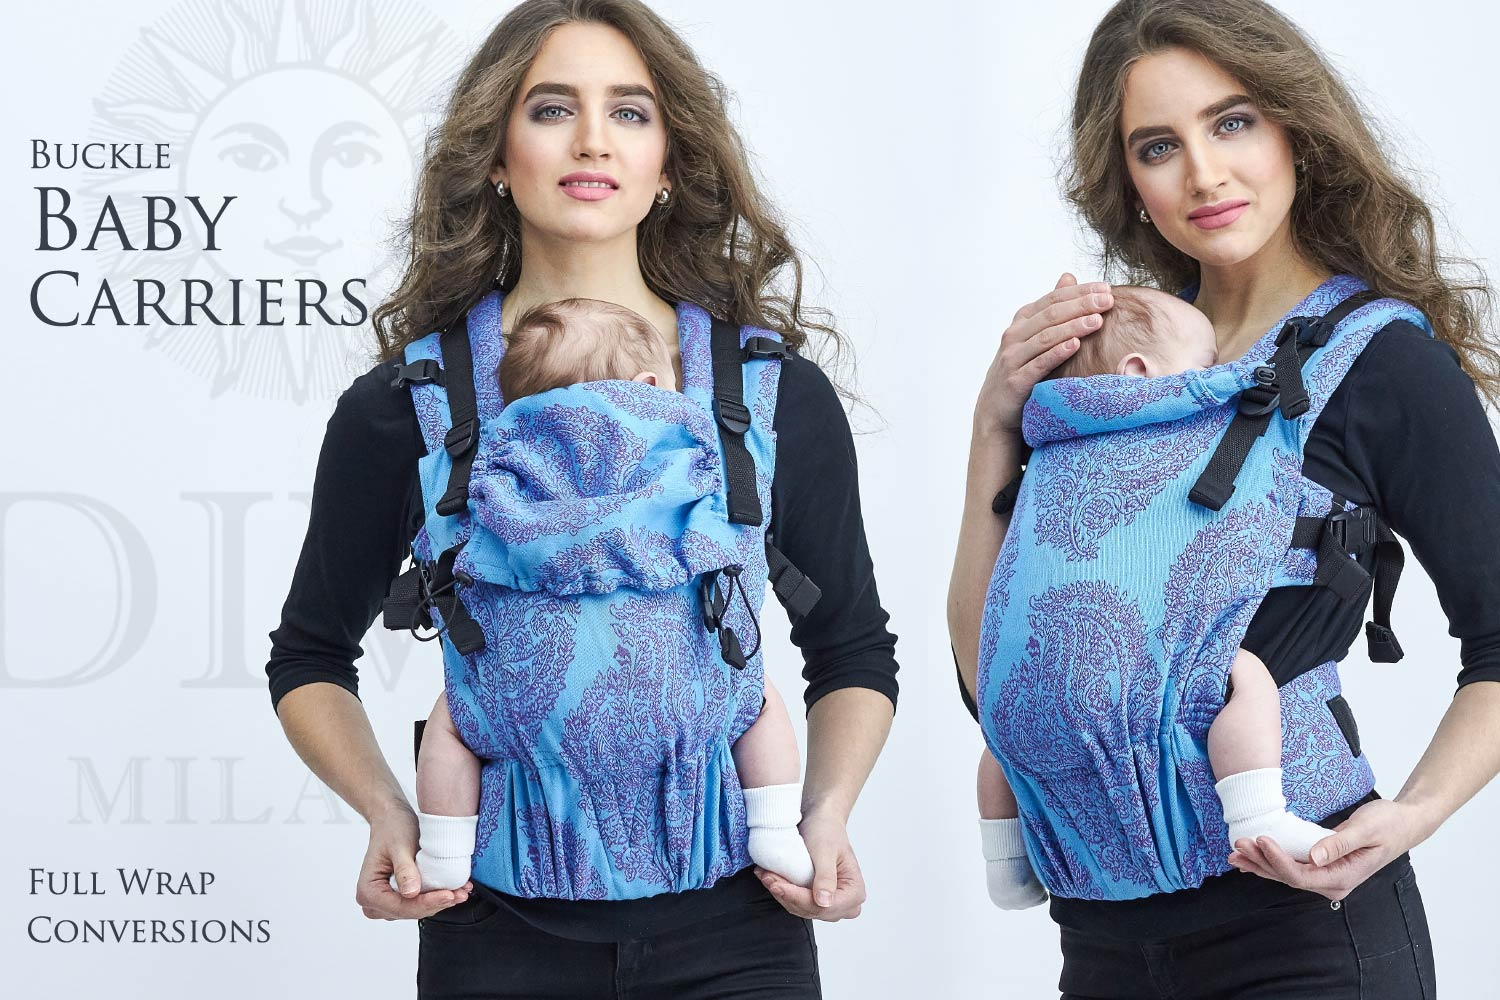 Buckle Baby Carrier - Wrap Conversion